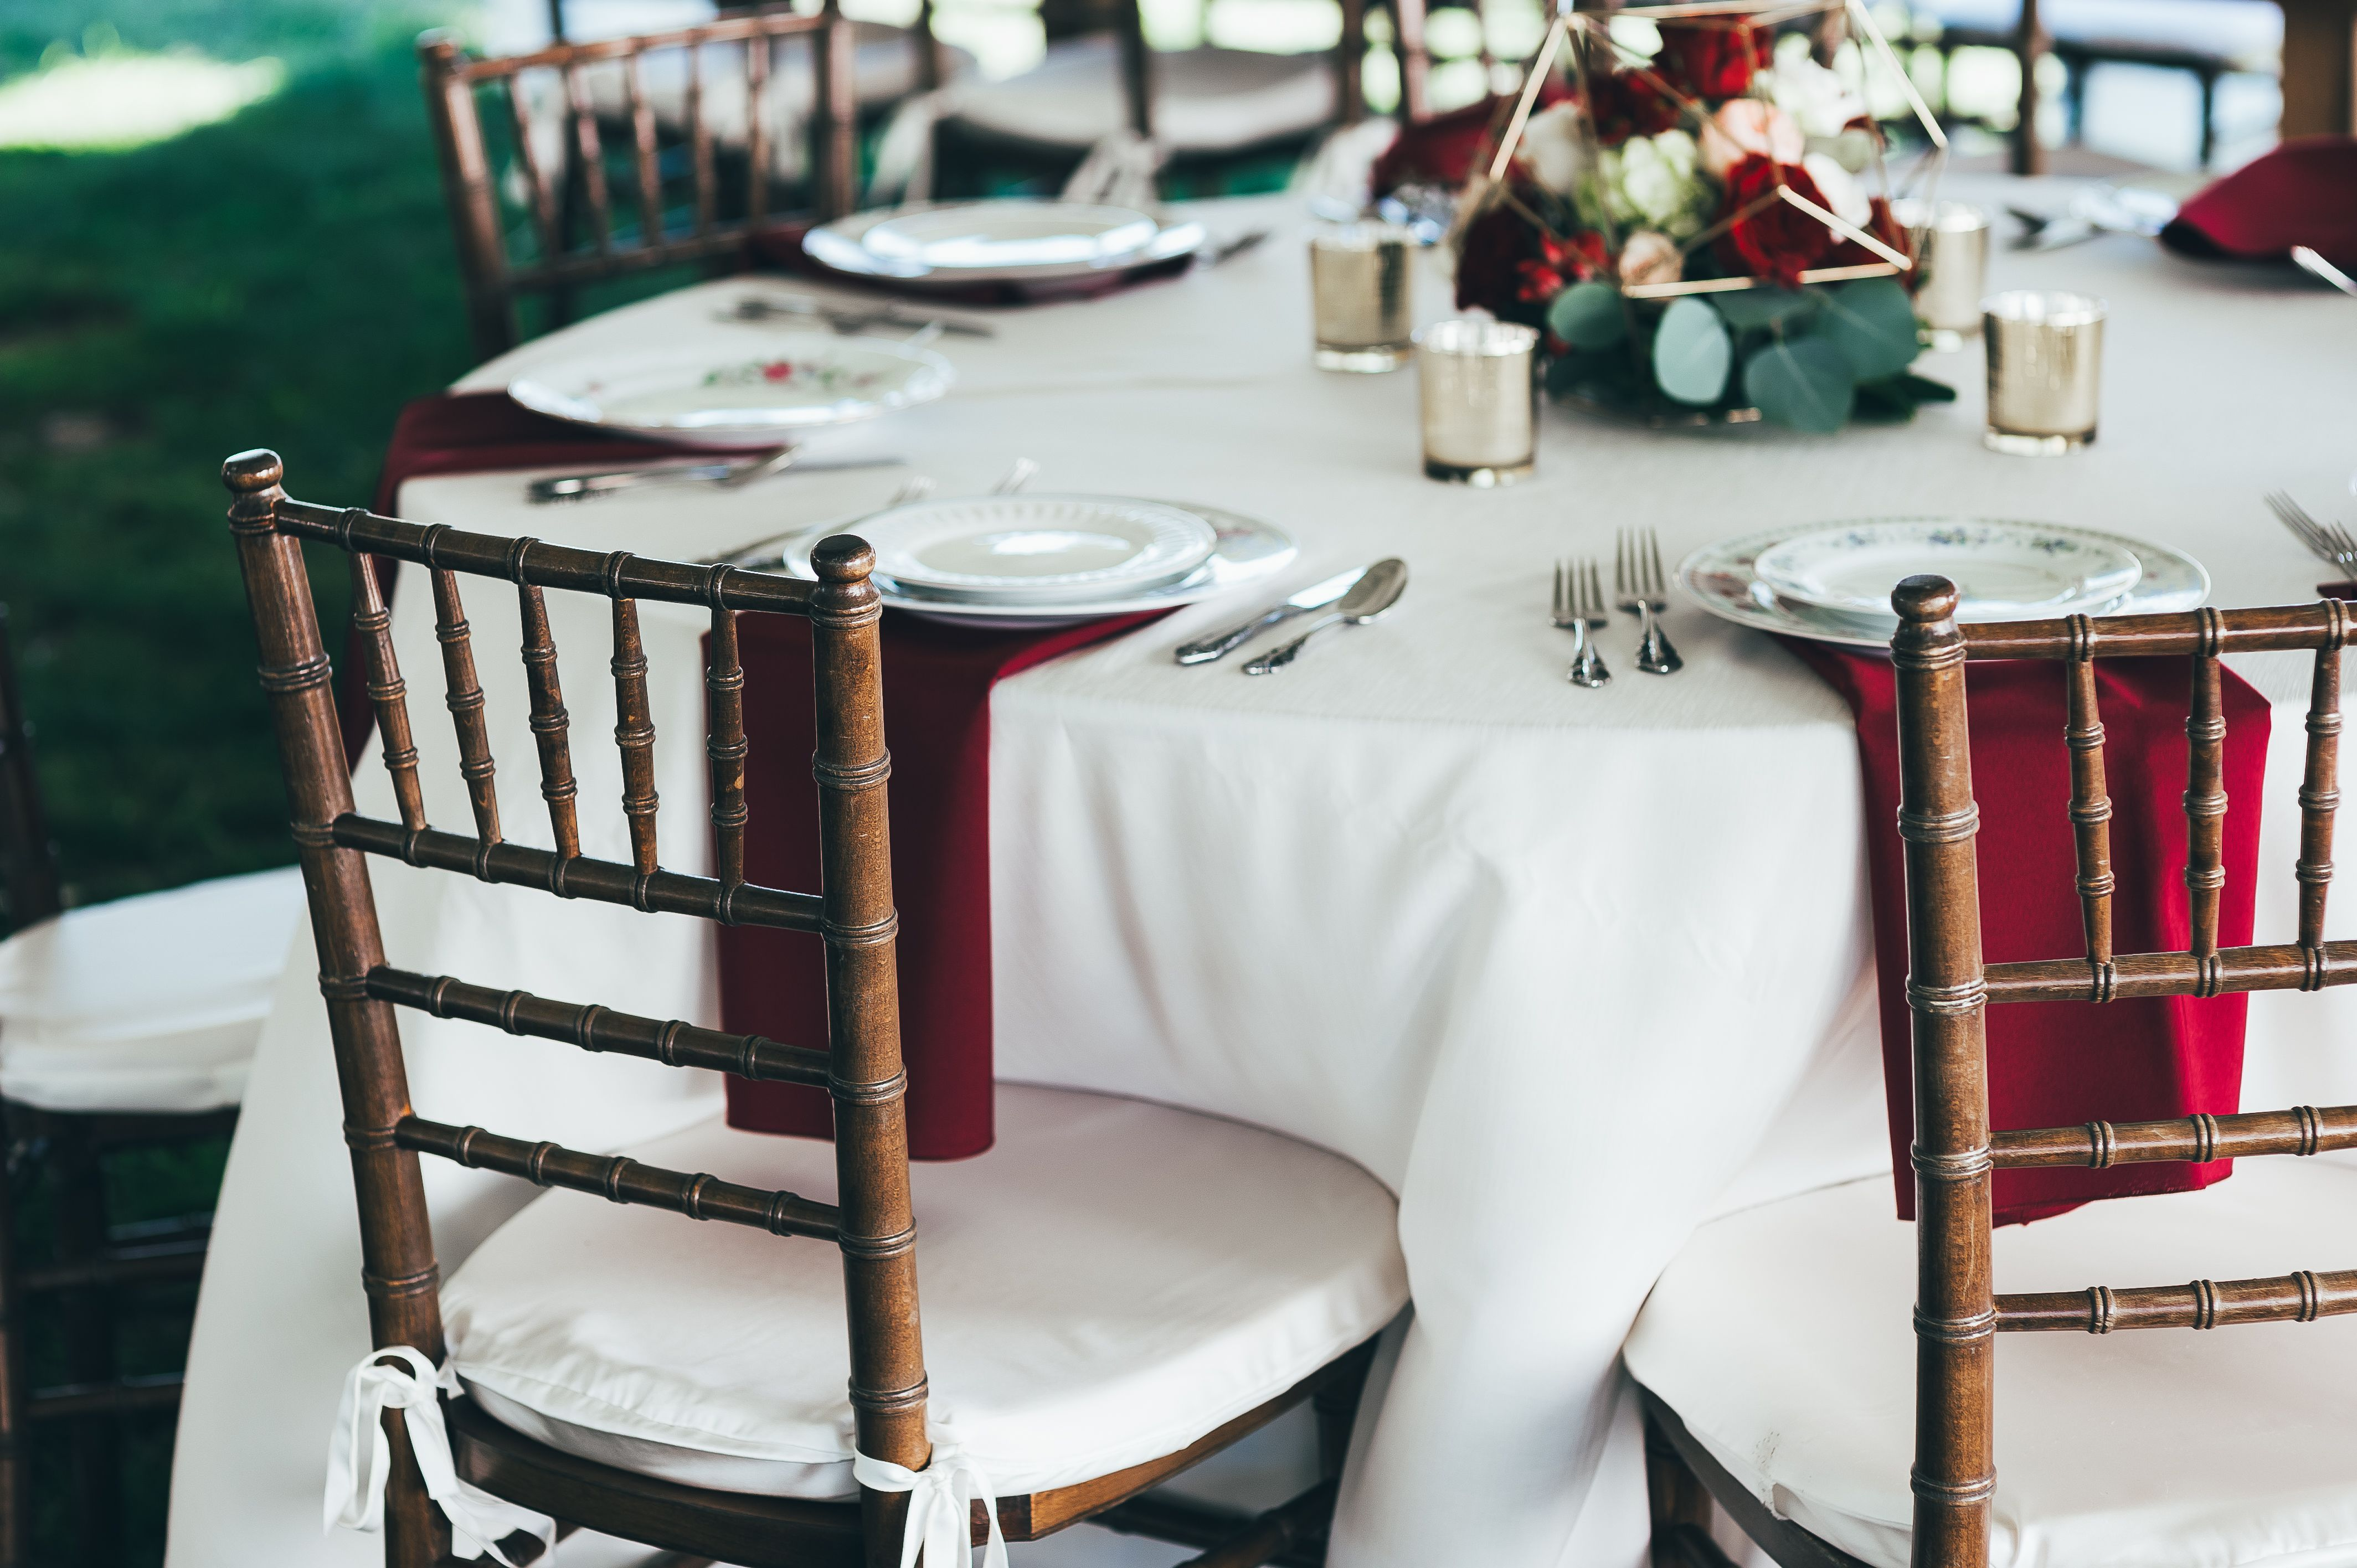 Wedding decorations for house  Reception details Wine and blush wedding decor  The house and